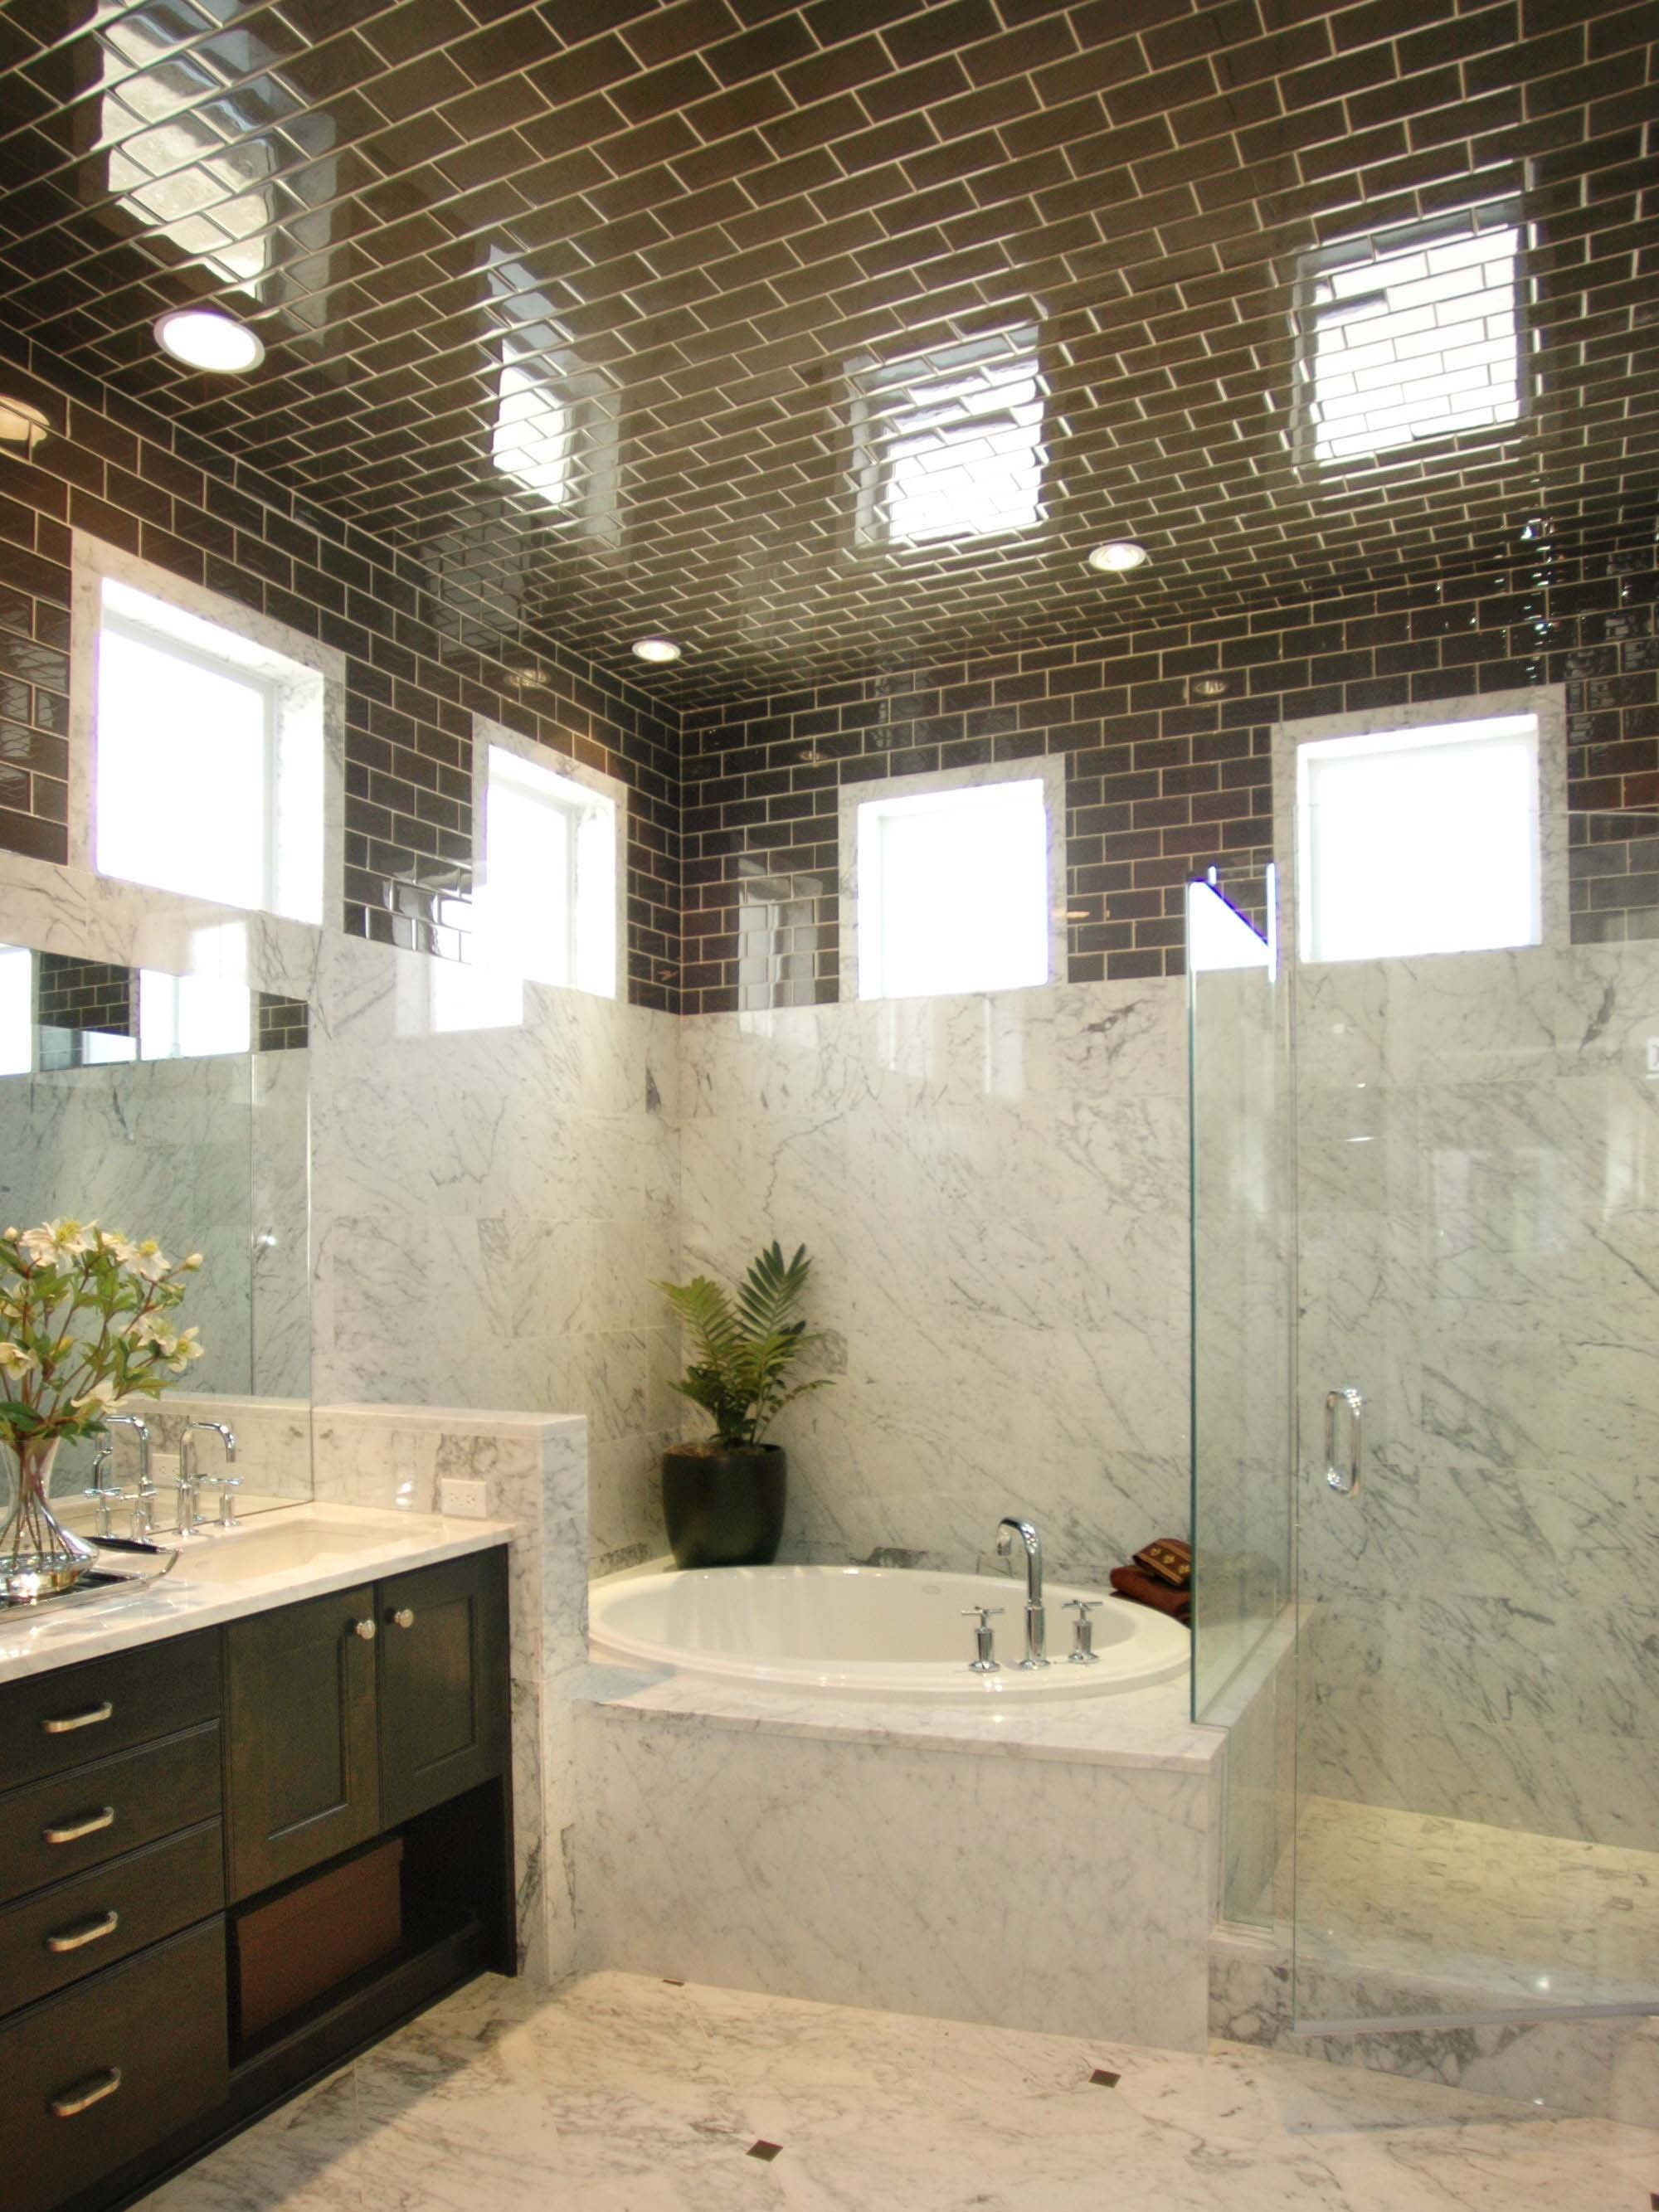 Loft Bathroom Marble Wall Decor With Brown Tile Ceiling (Image 9 of 18)